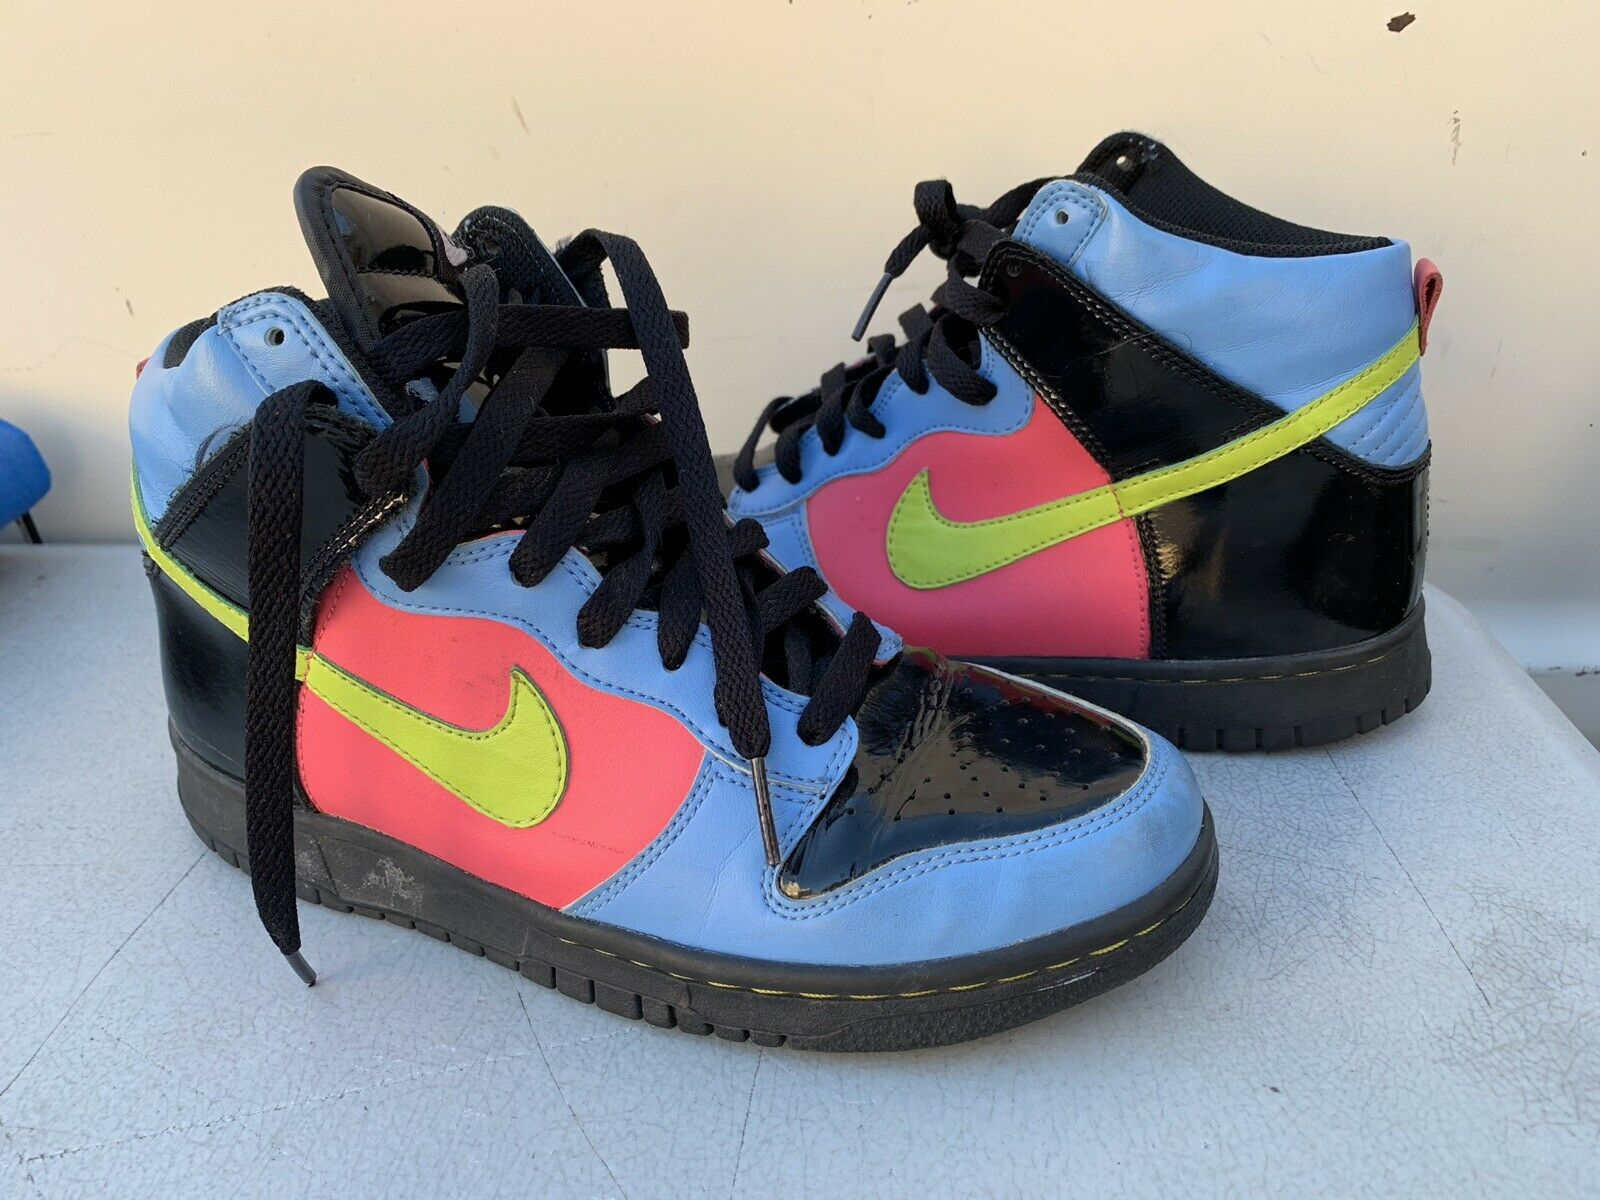 Nike Swoosh Dunk High (Kids) Retro 308319-003 Pink bluee and Black Size 6Y